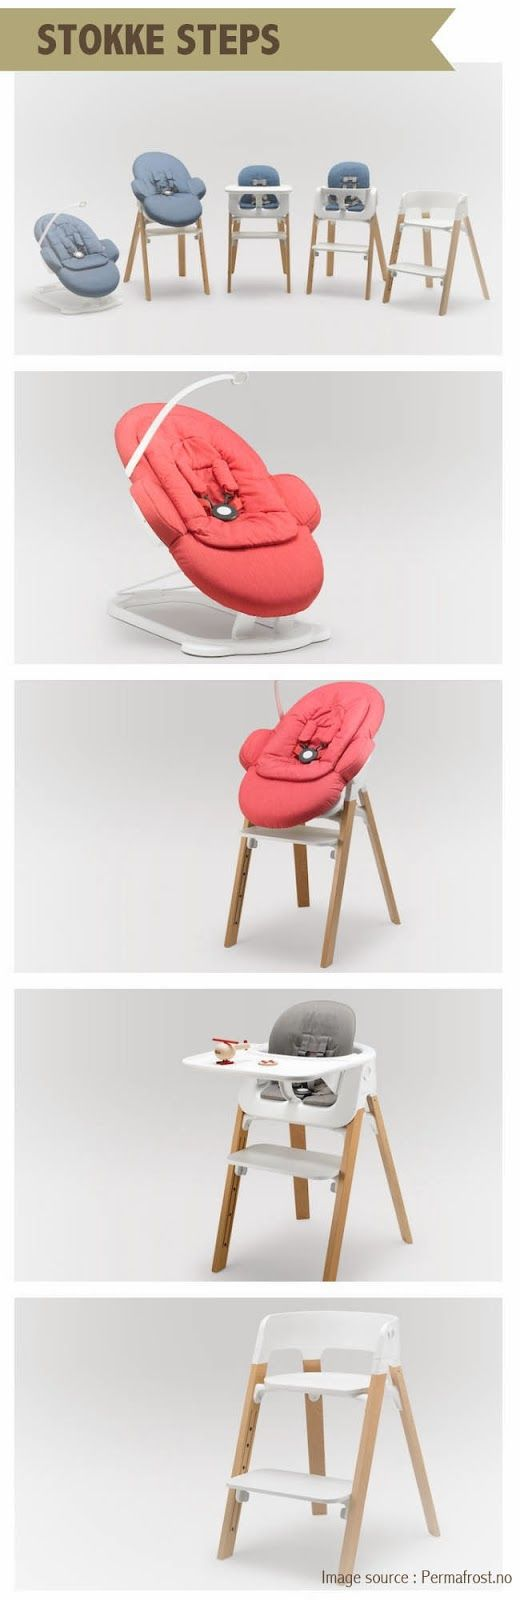 Stokke Steps Chair Stokkelovers This chair grows with your baby - super cool!